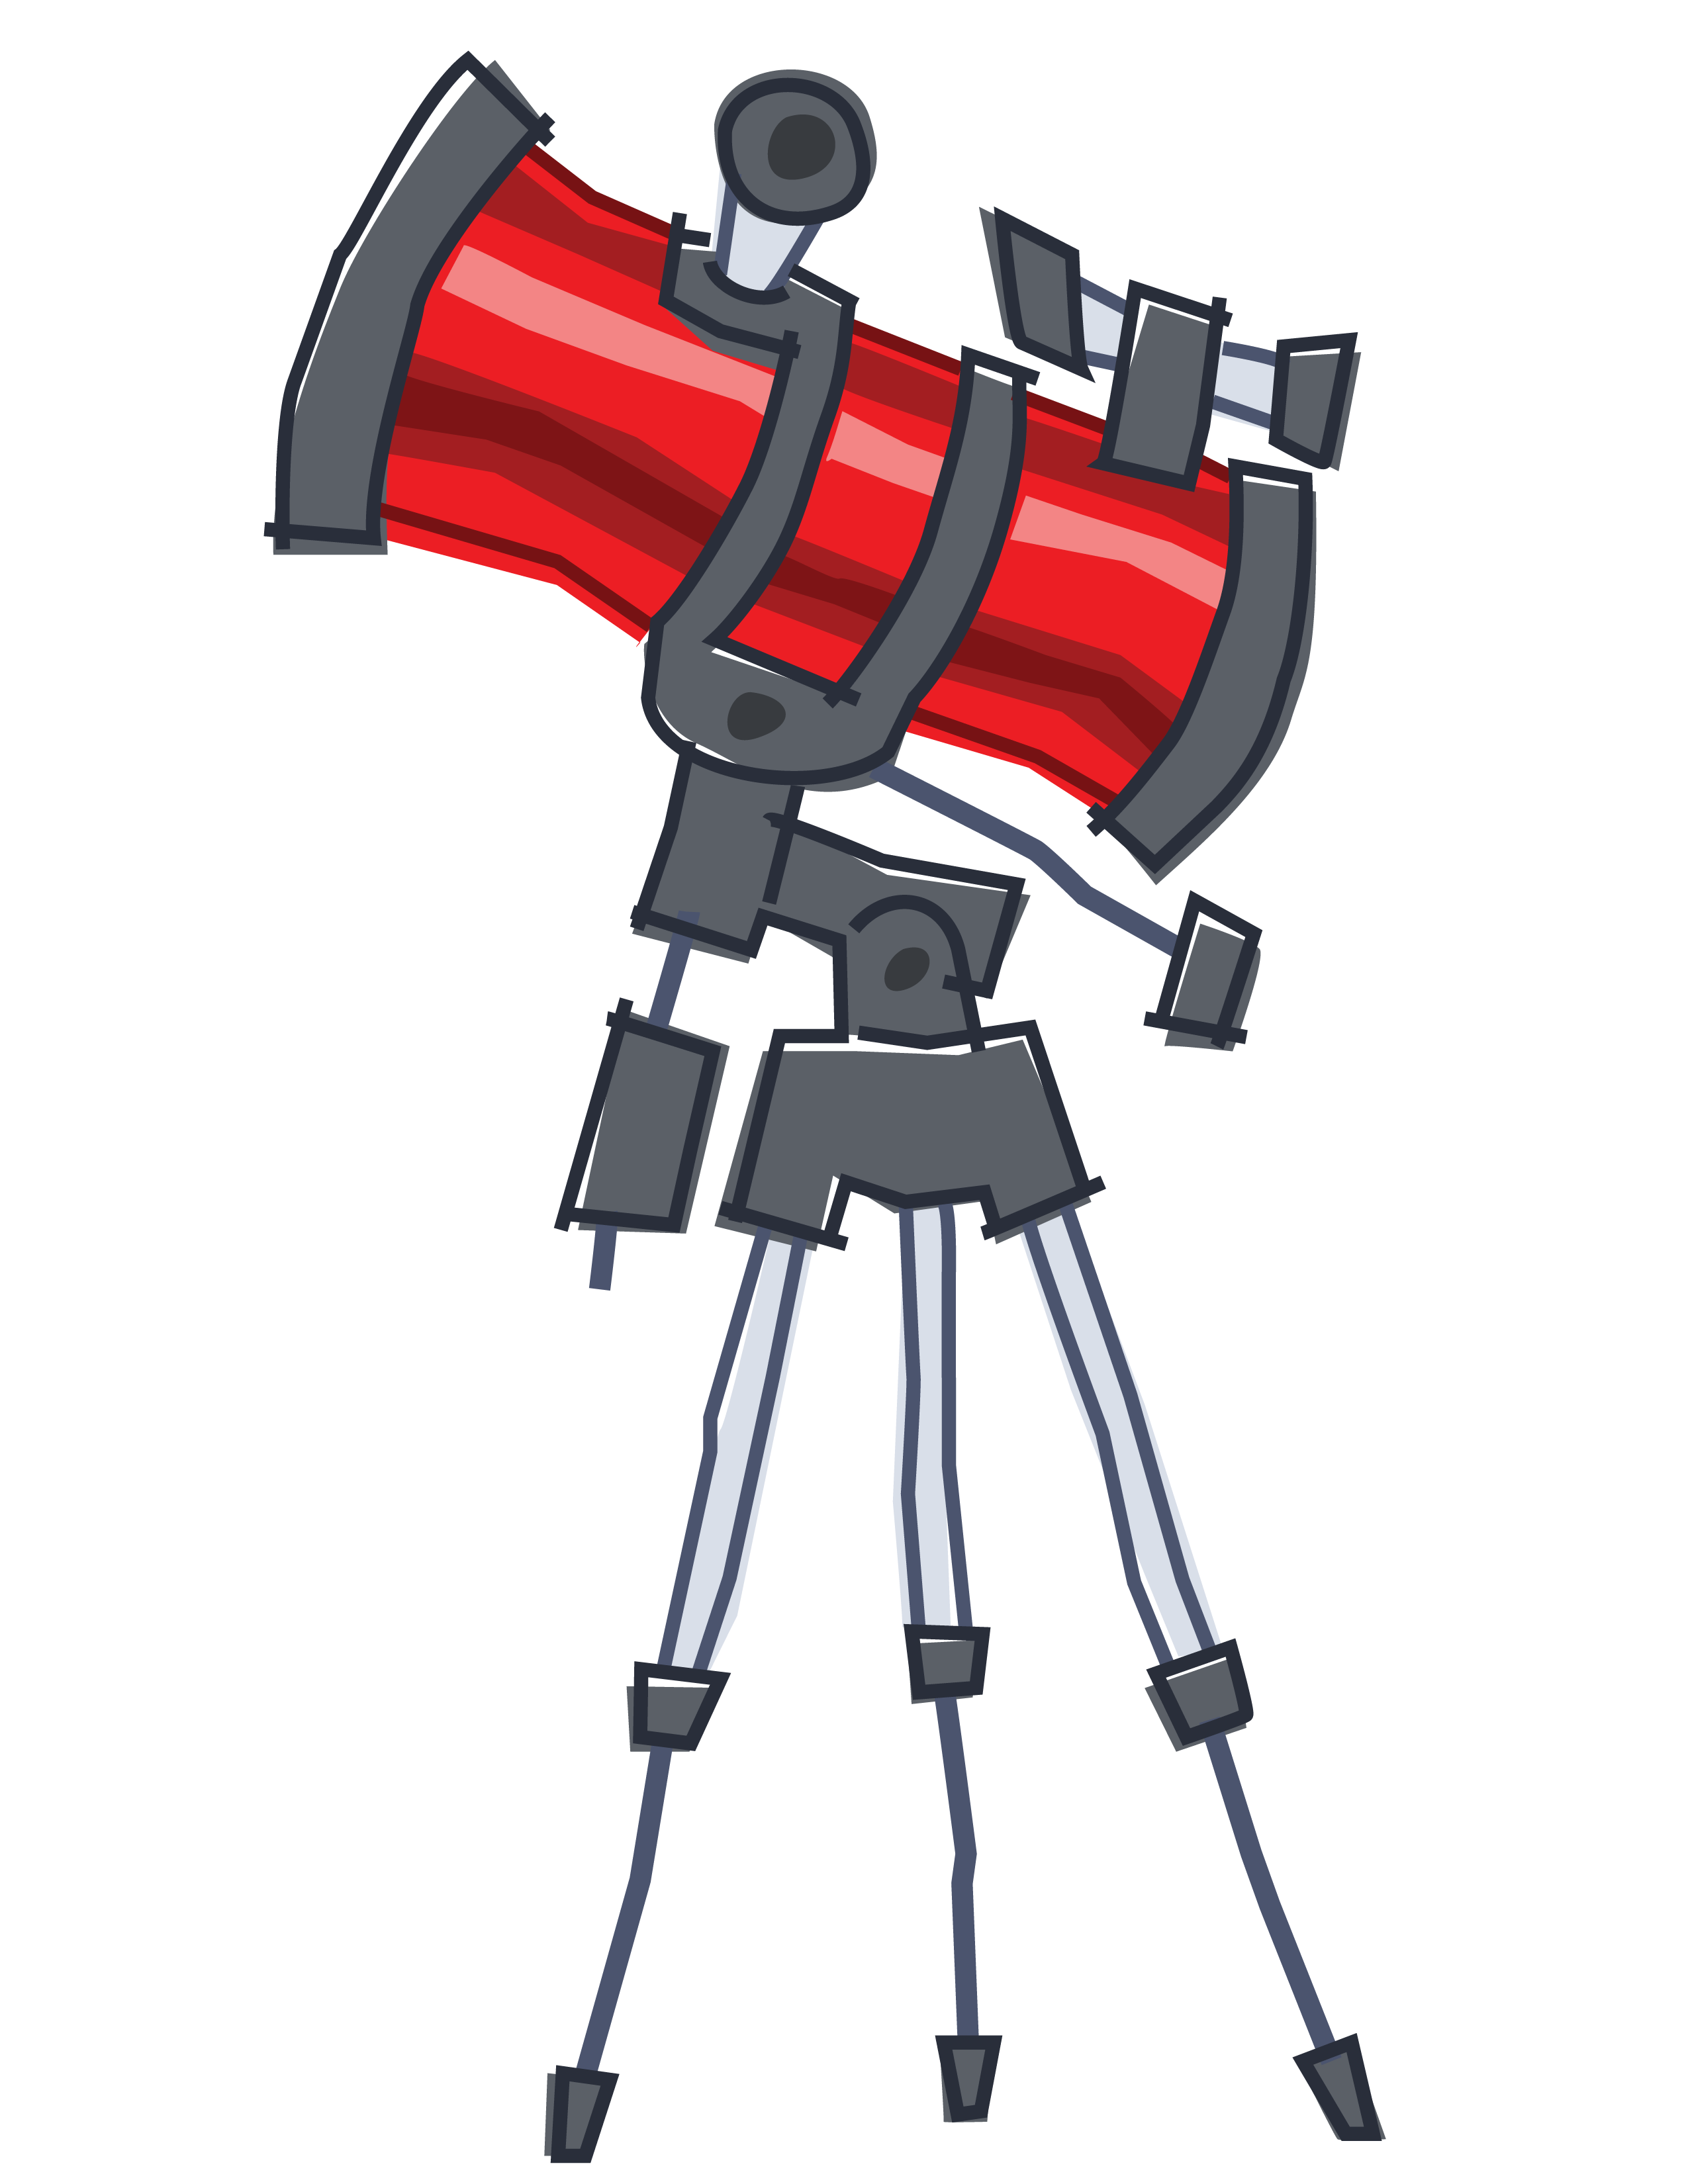 Planets clipart starveyors. Red telescope png vbs